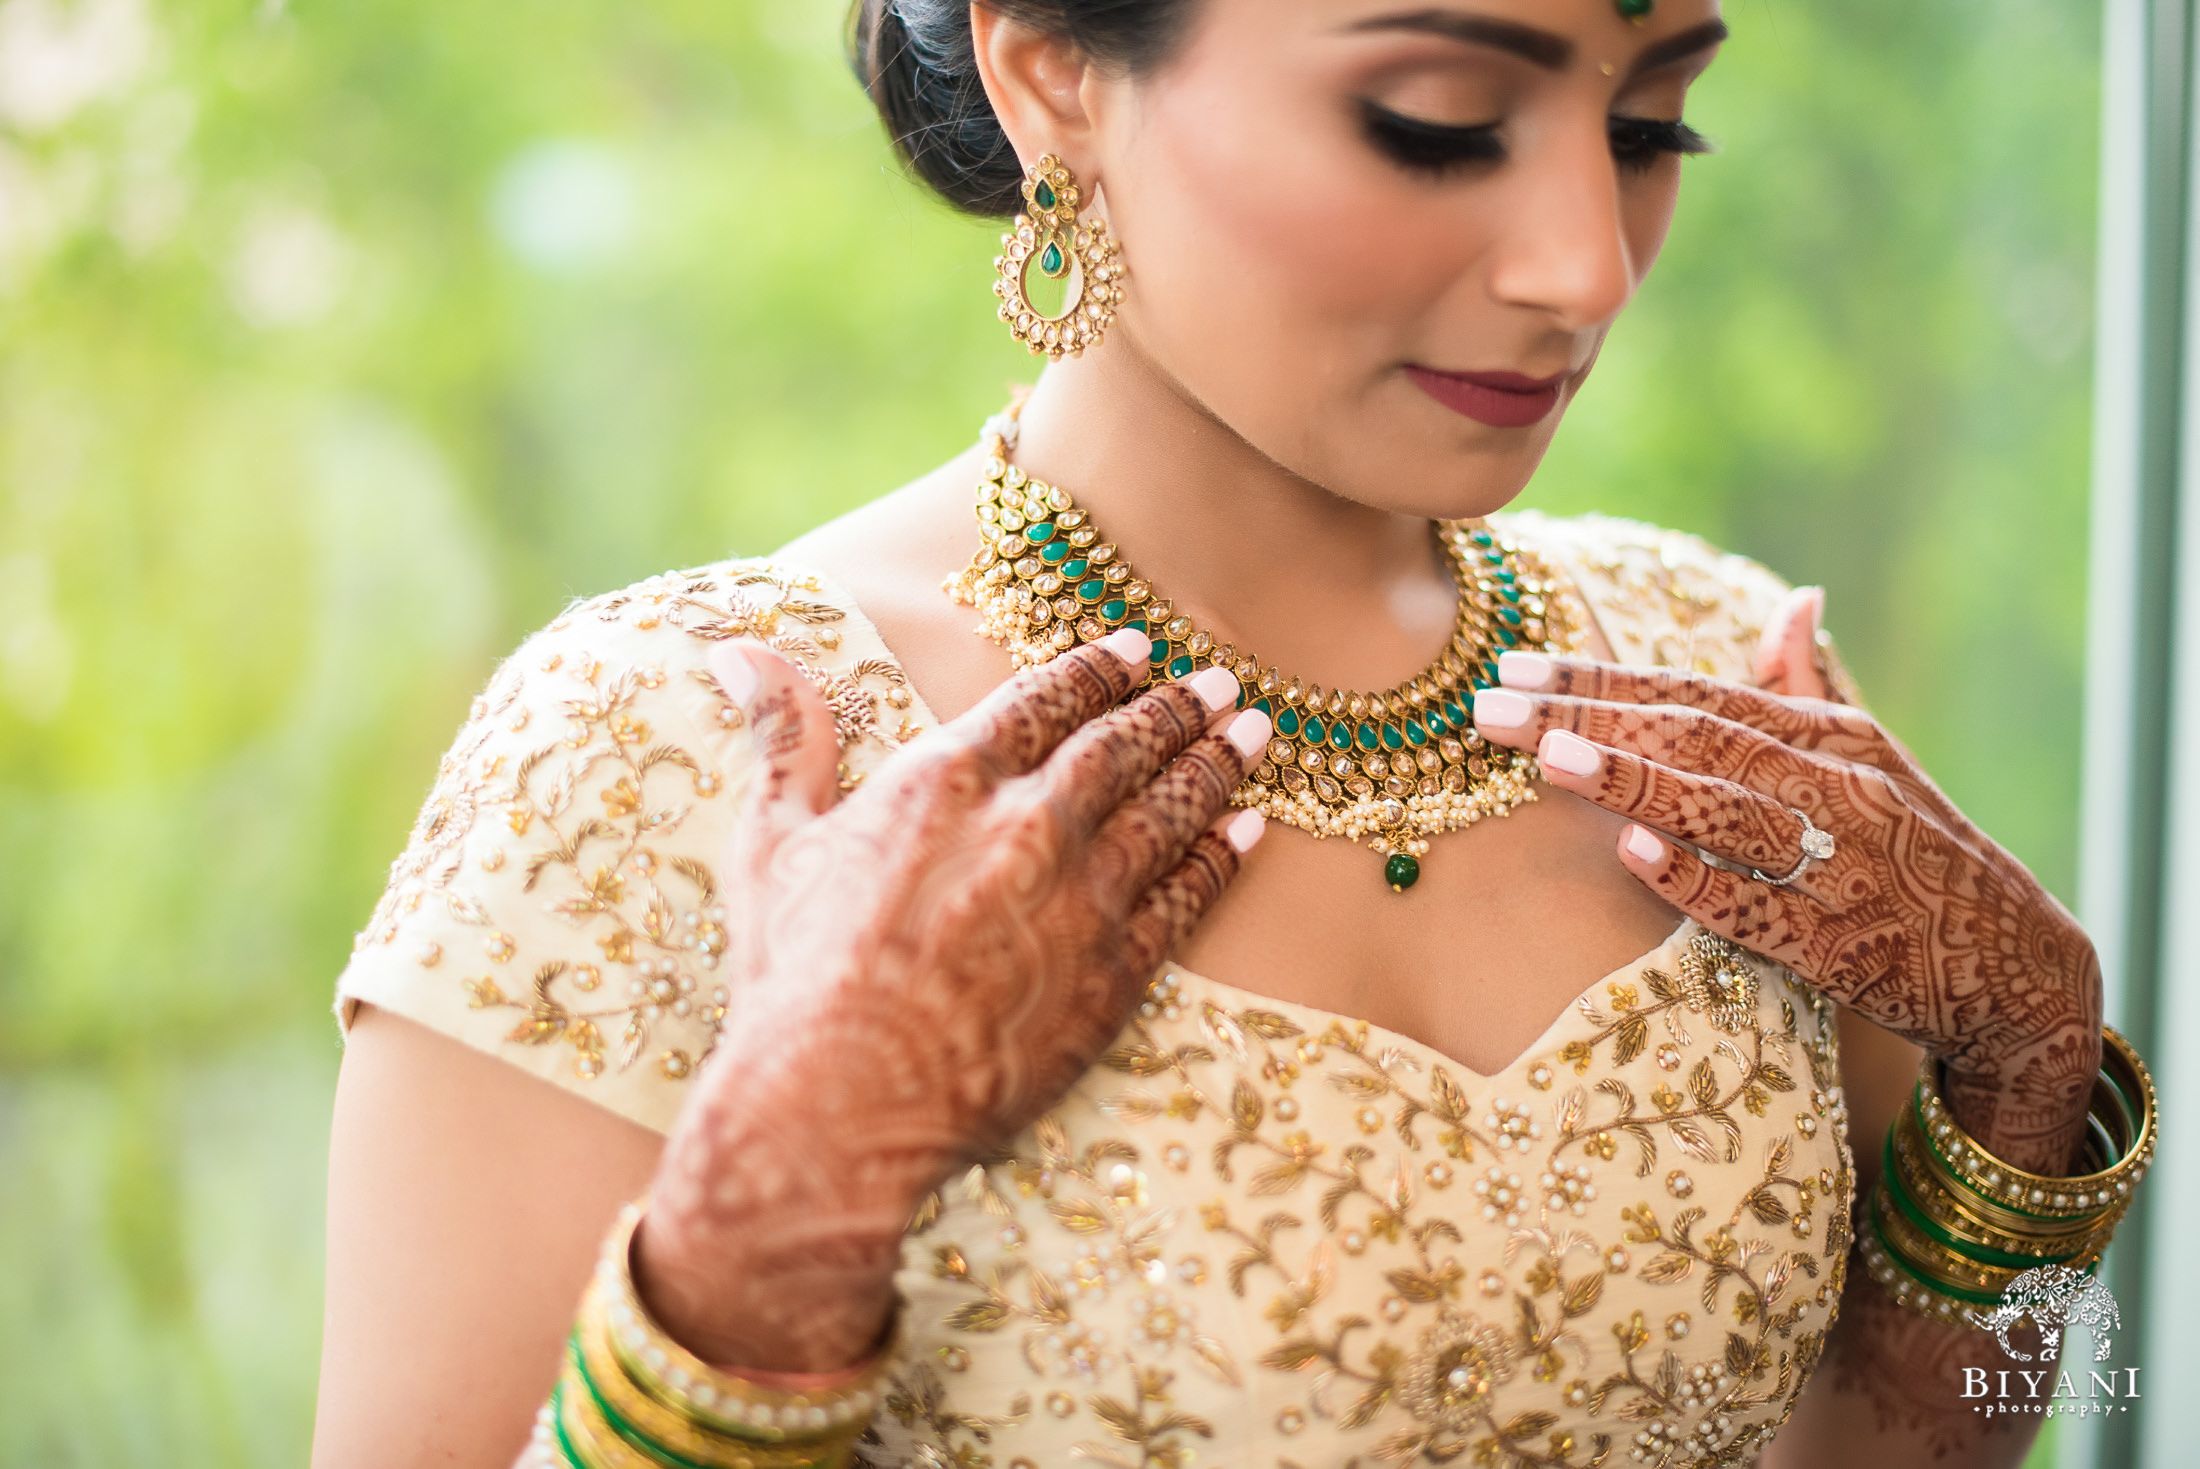 Indian bride putting on her necklace before her wedding ceremony